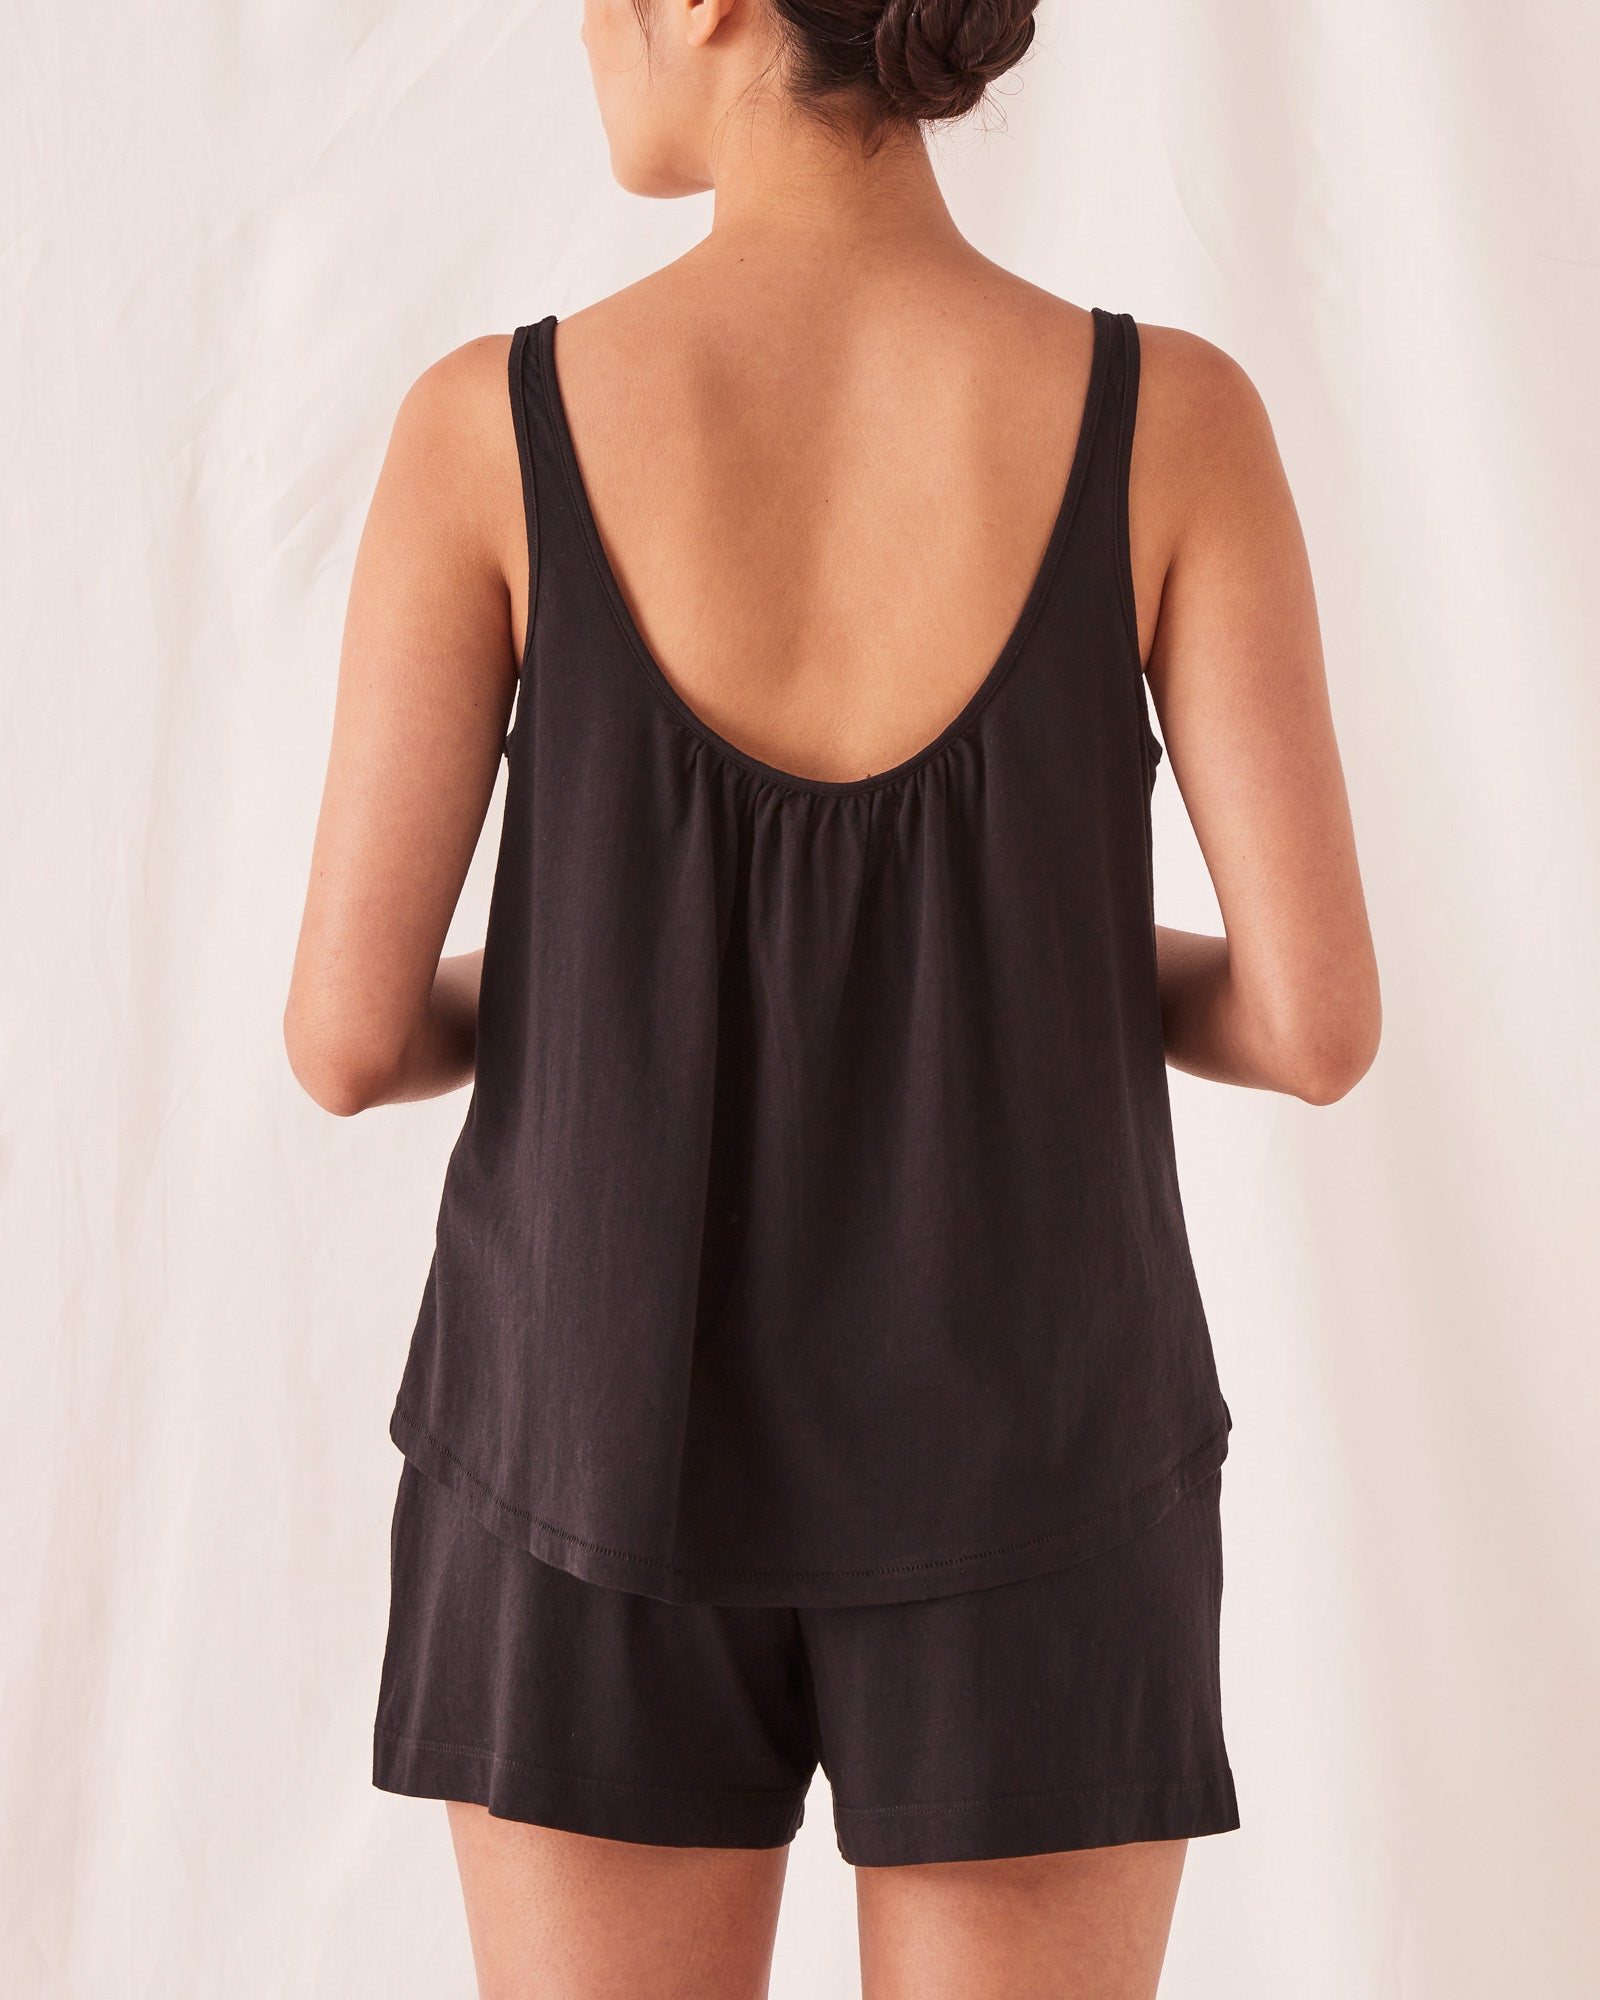 Tilly Top Black